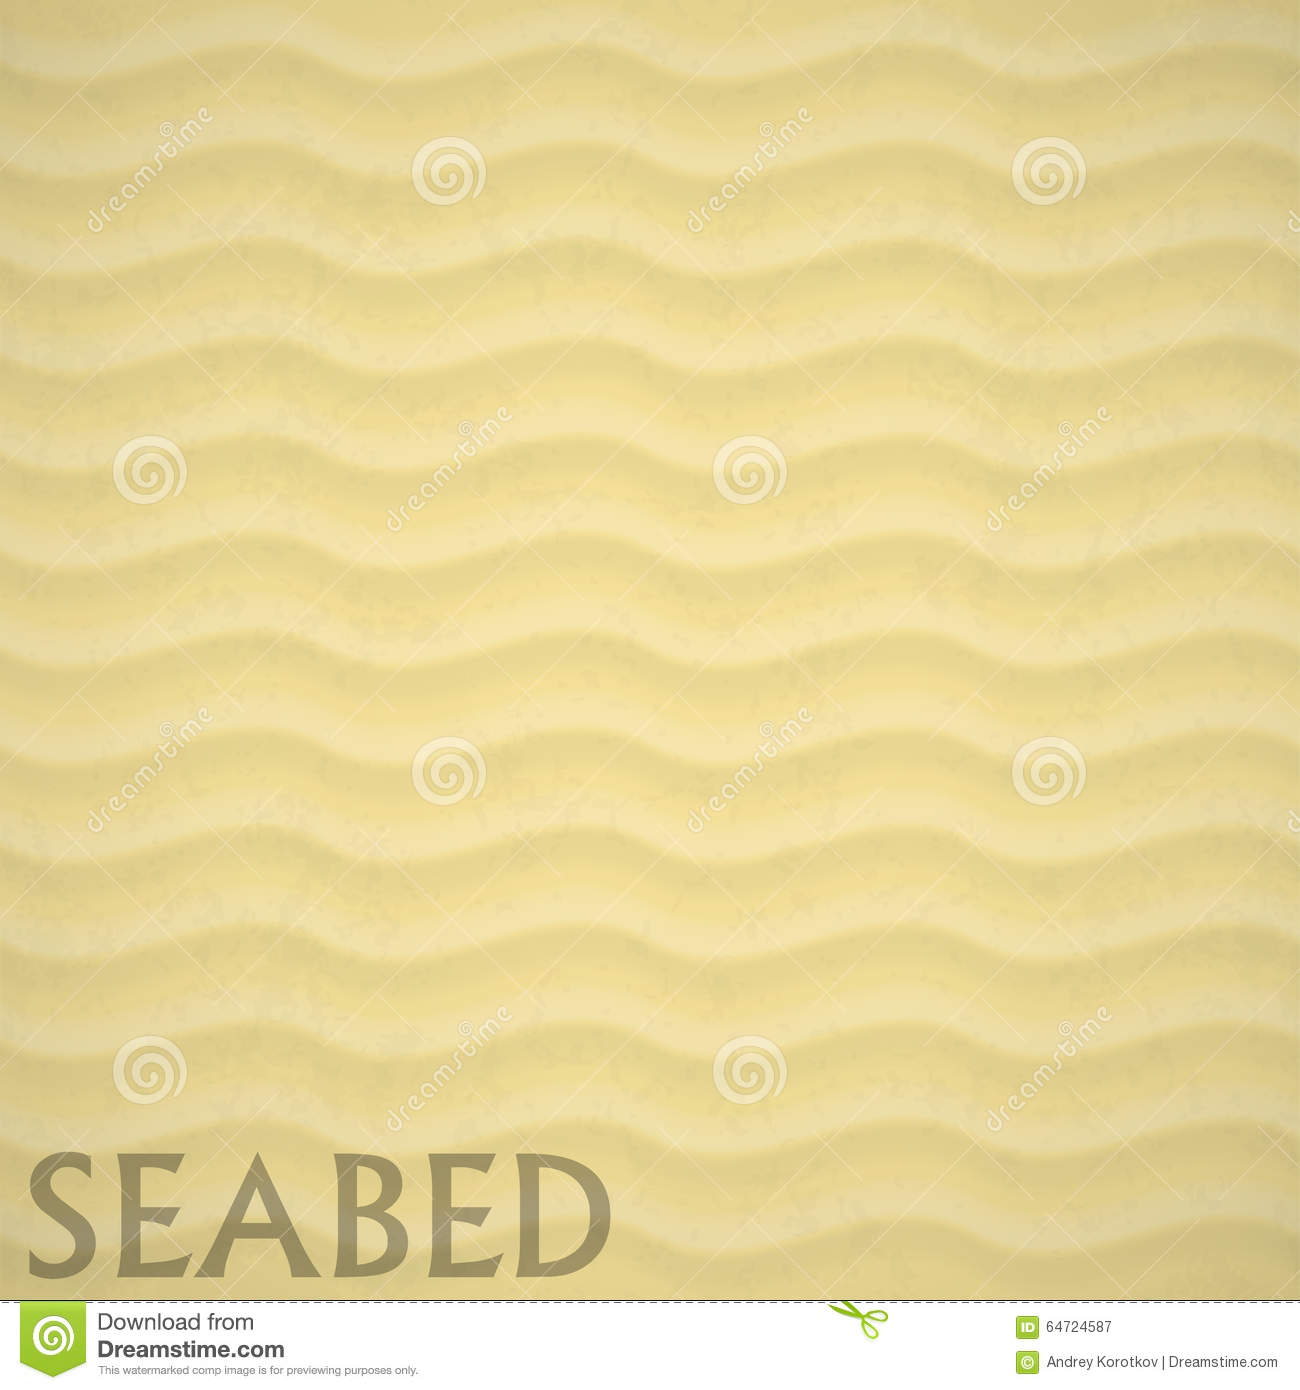 sea bed beach vector -#main